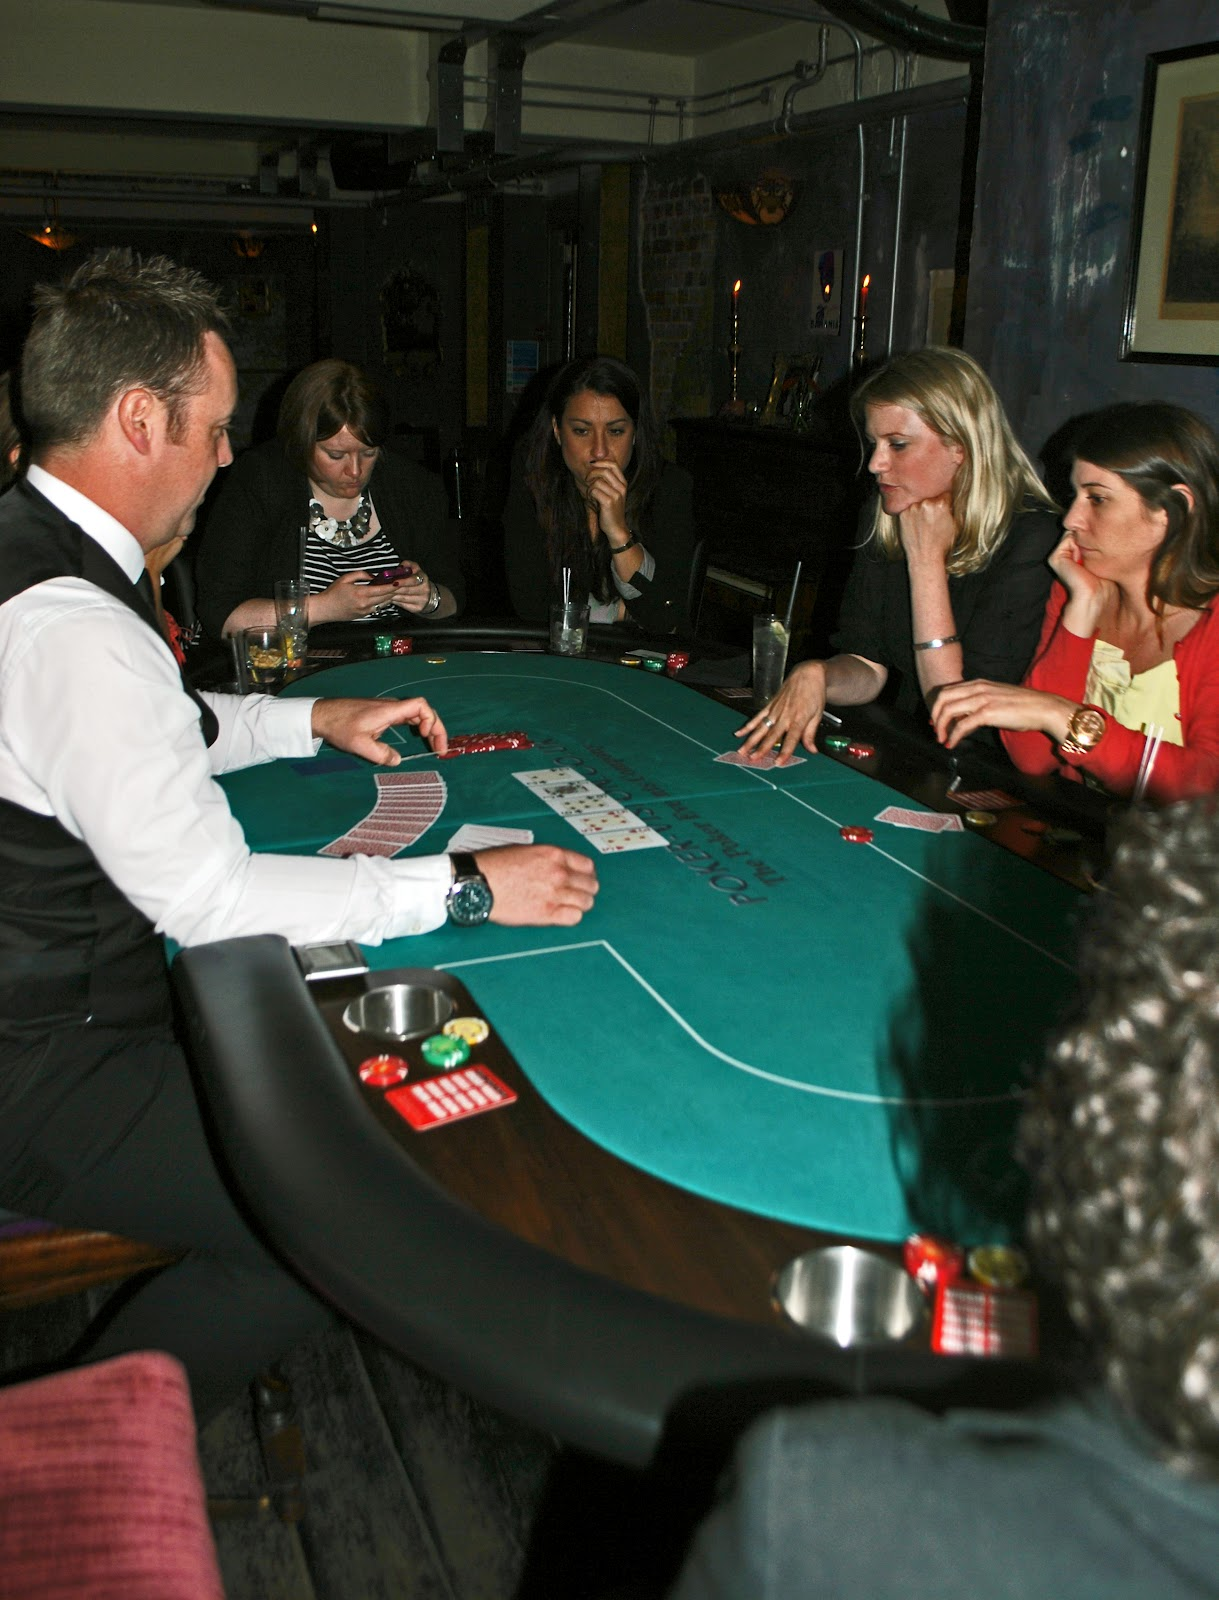 Fluid London Blog Musings From The Bar And The Restaurant Table Poker In London 7 Days A Week Sometimes For Girls Only